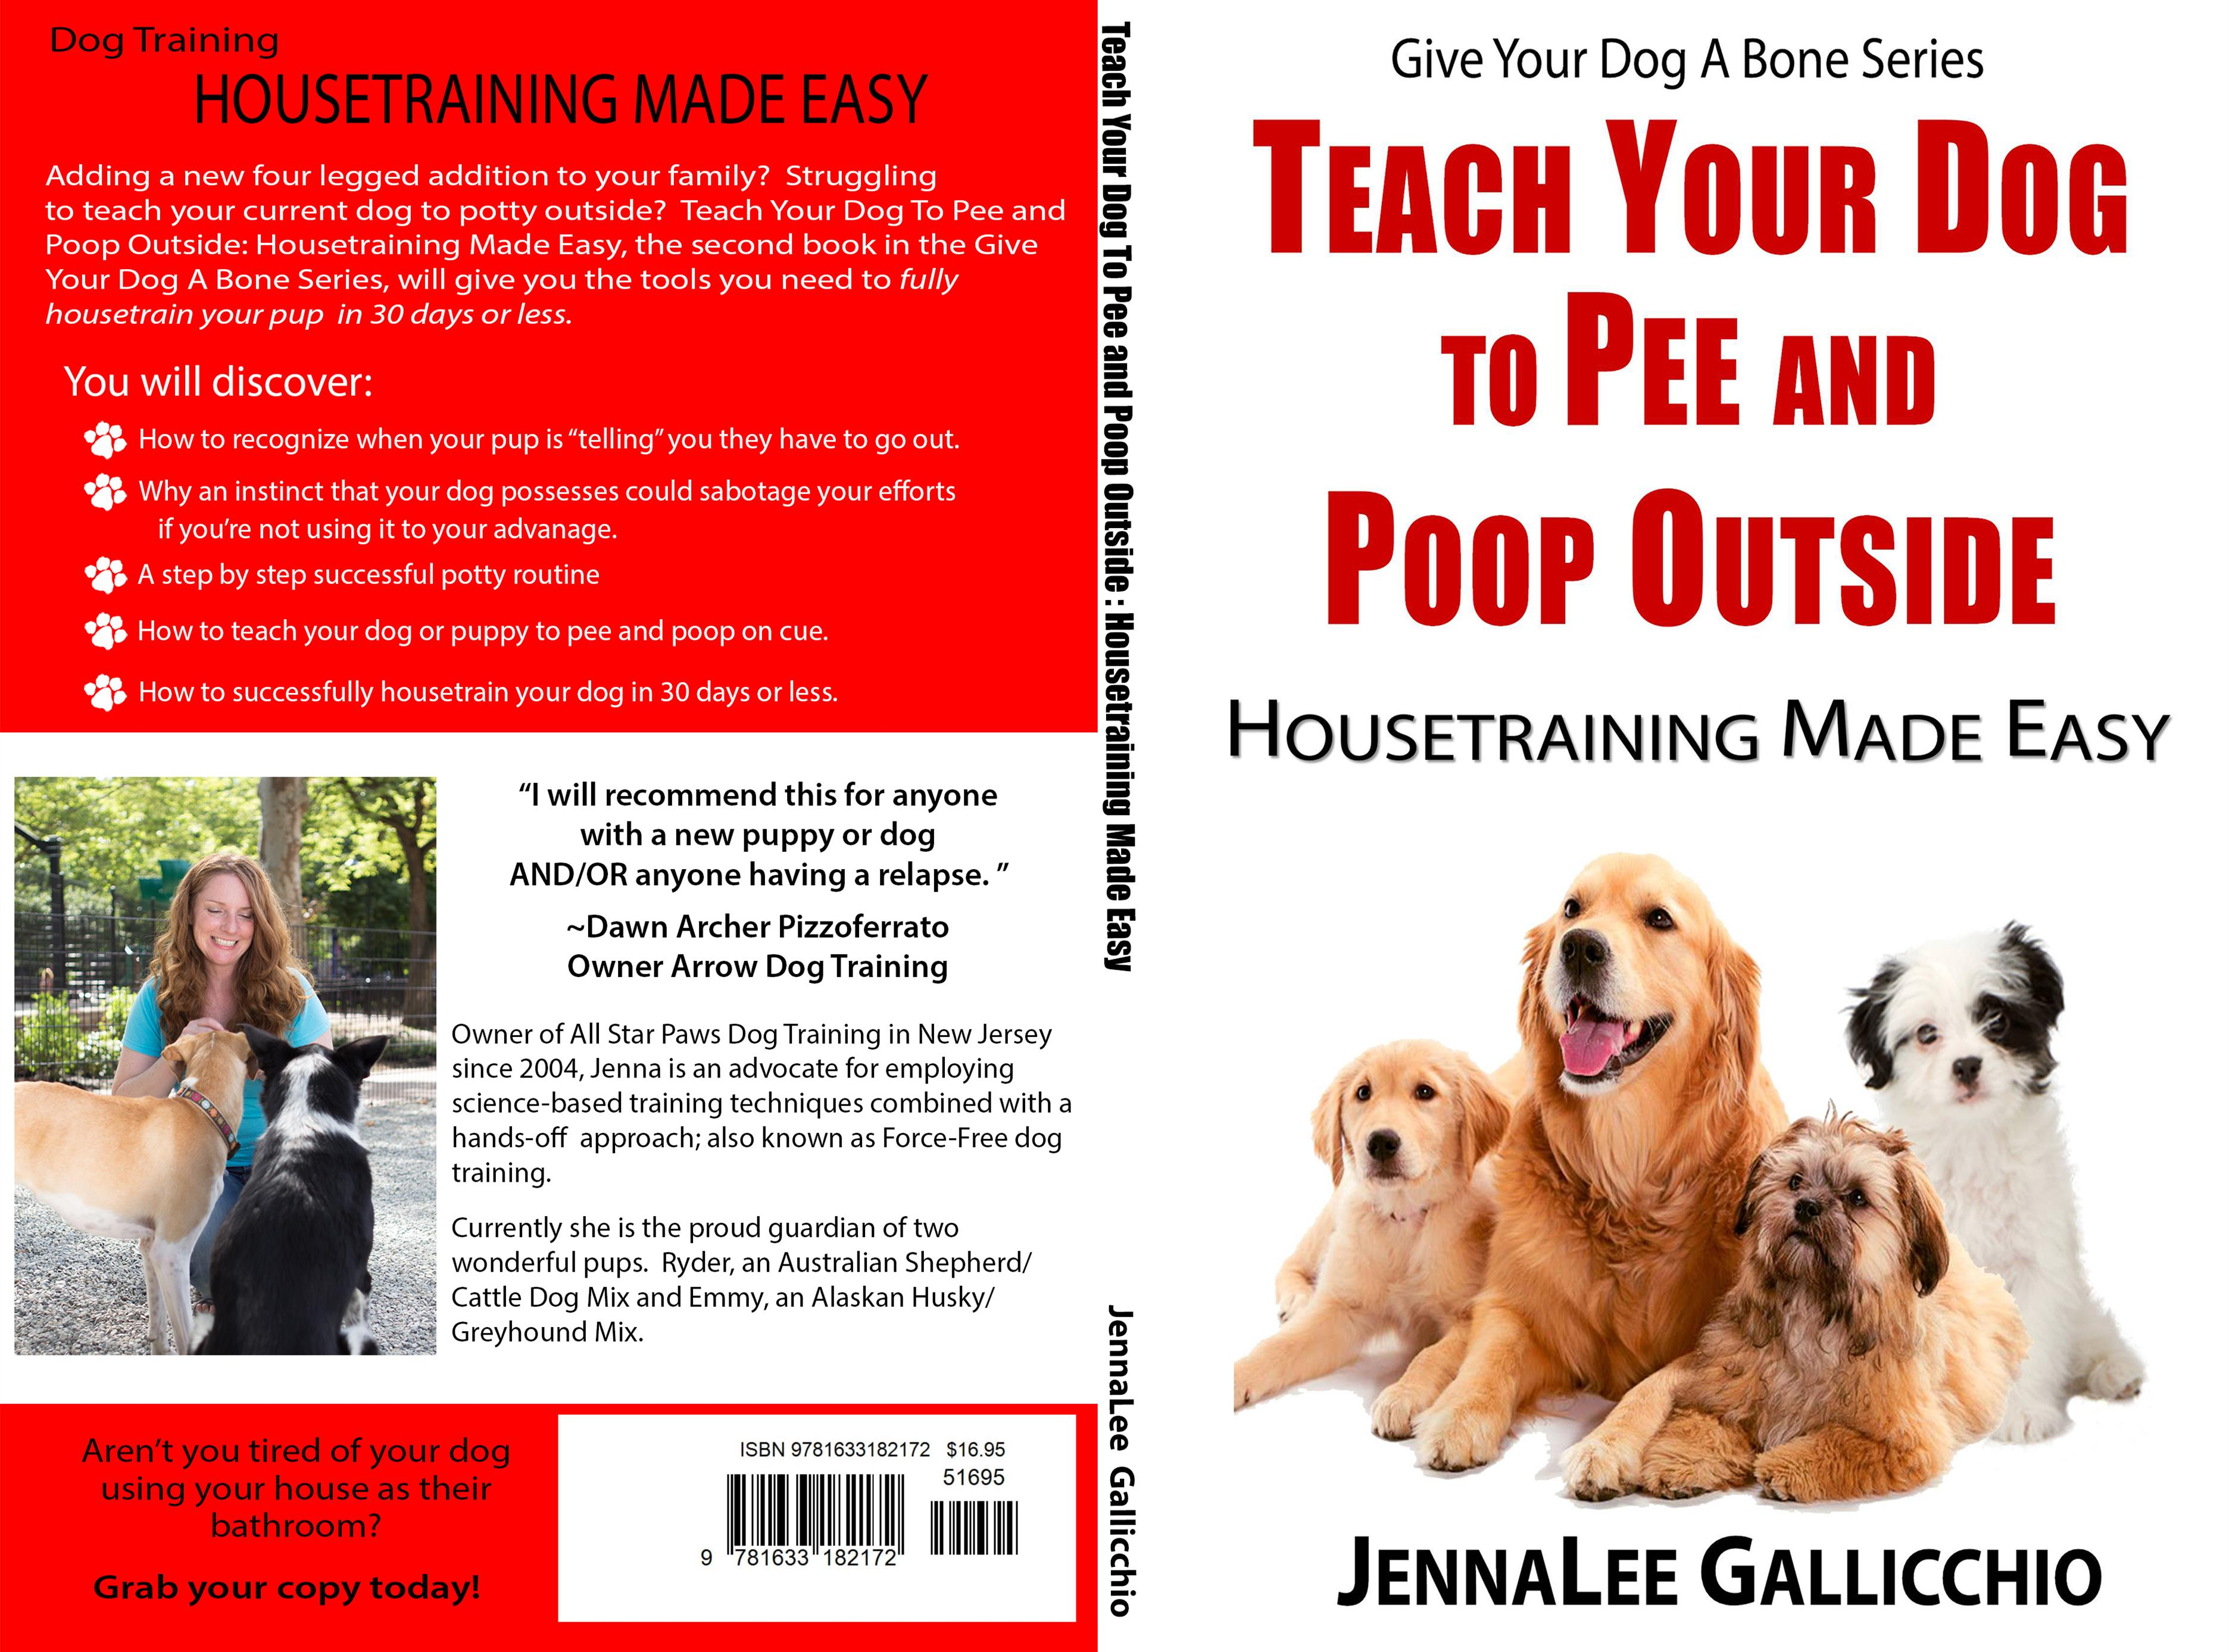 ... Teach Your Dog To Pee and Poop Outside: Housetraining Made Easy cover image